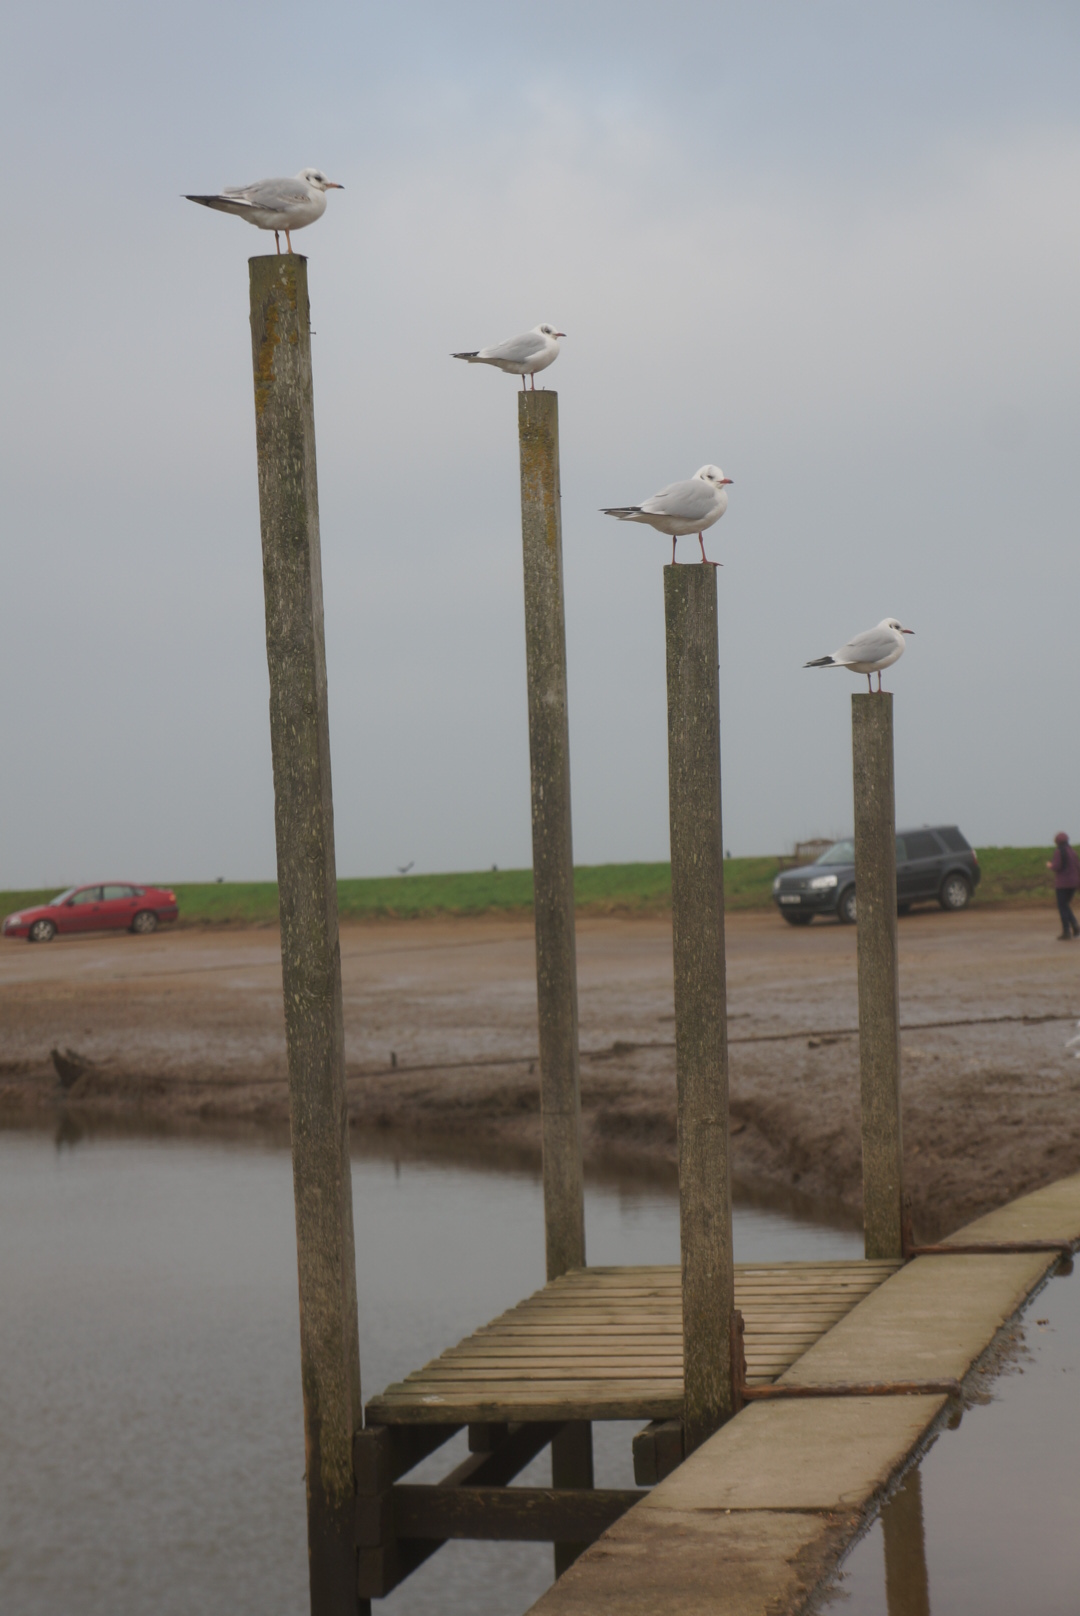 Erect any post and a bird will land on it